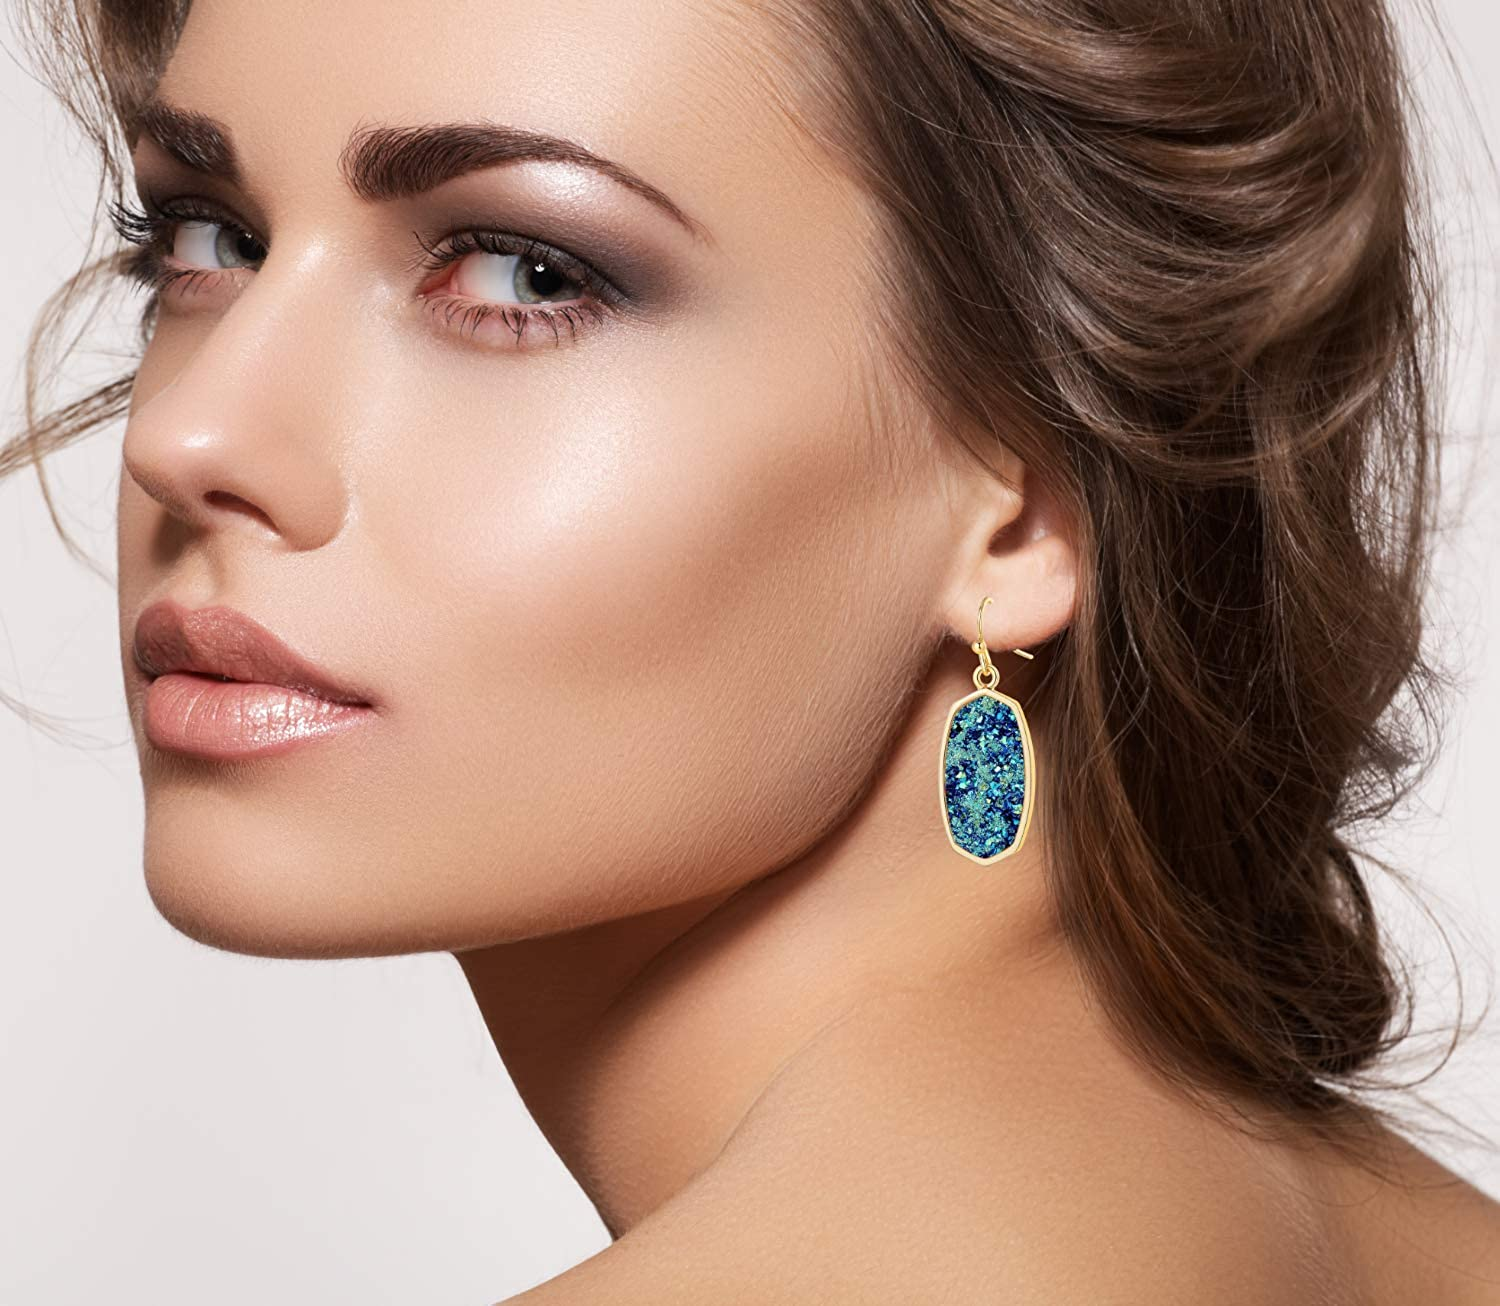 Statement Oval Simulated Druzy Crystal Stone Gold Tone Drop Dangle Earrings for Women and Girls